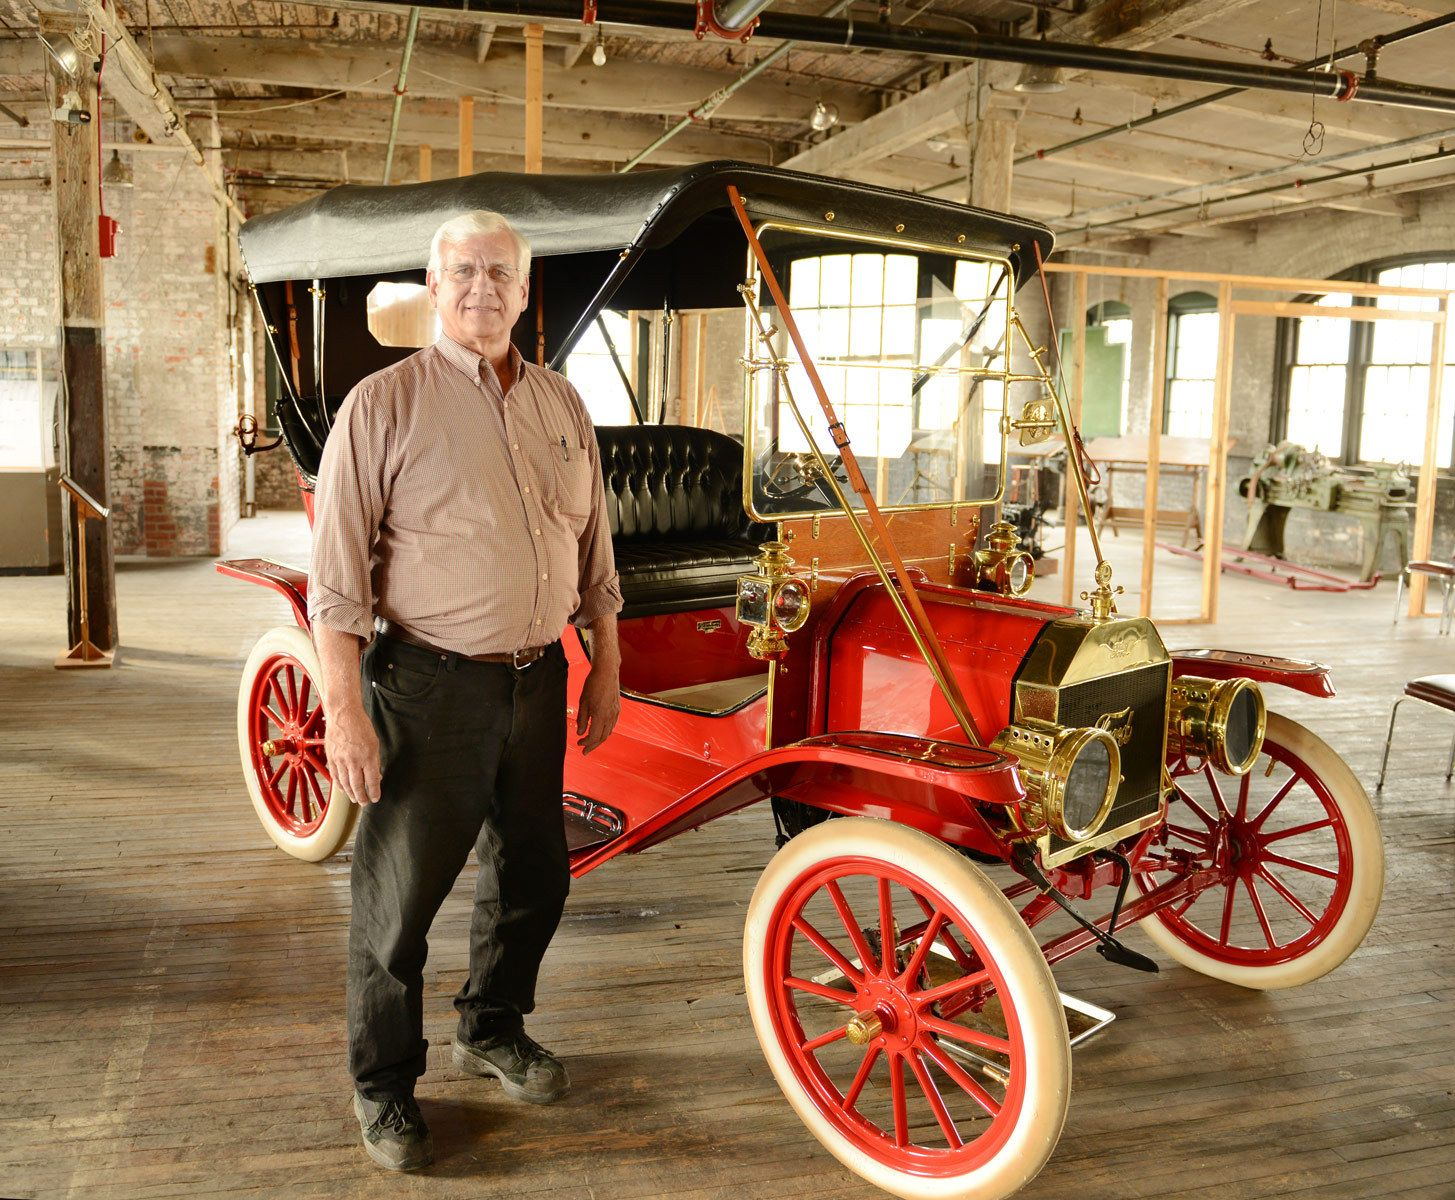 1ford_piquette_plant_dick_rubens_detroit_michigan.jpg